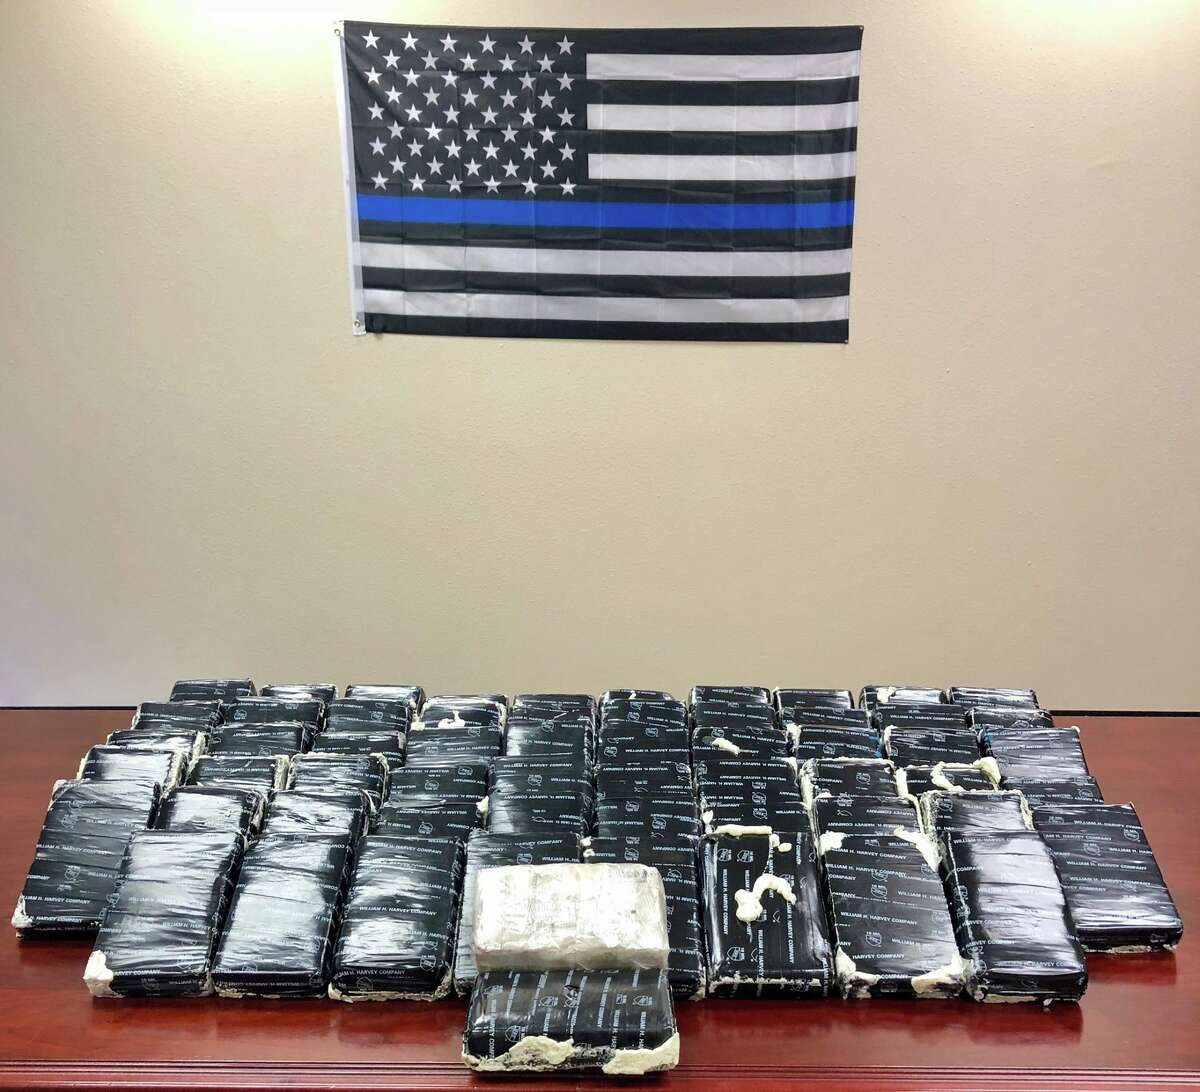 A Rosenberg police officer seized 156 pounds of cocaine during a traffic stop on Nov. 7, 2017 near Beasley.